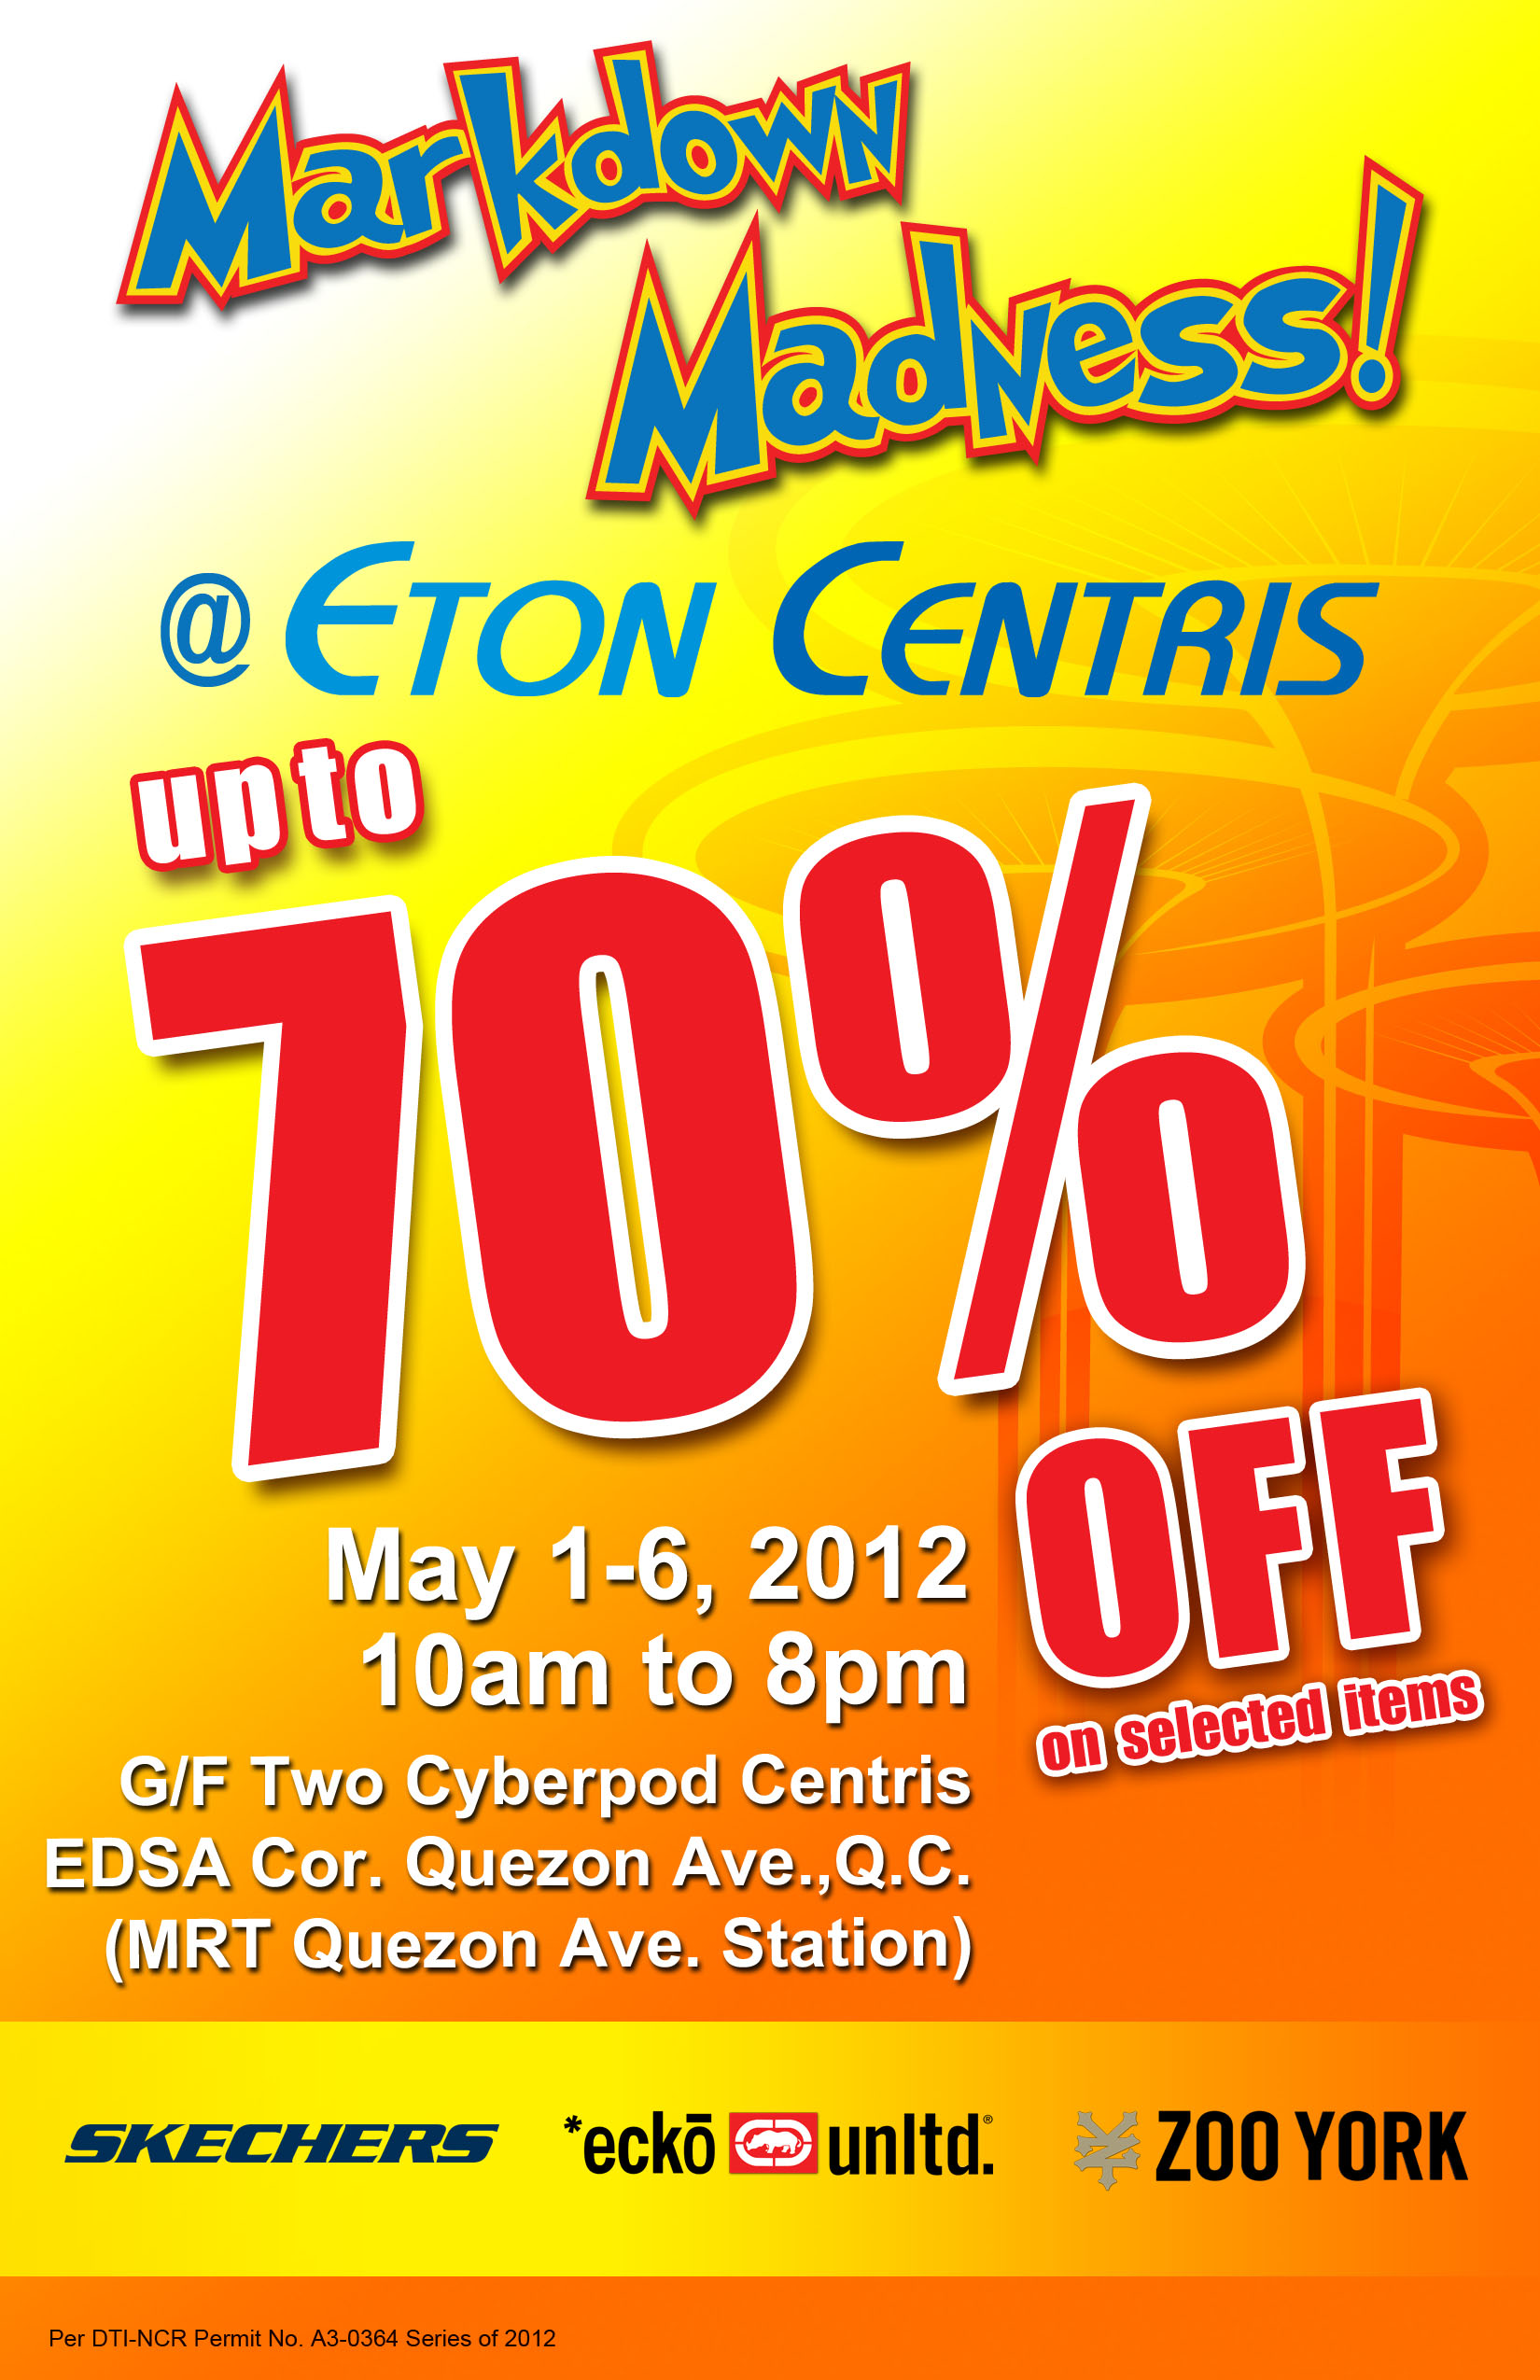 Markdown Madness @ Eton Centris May 2012